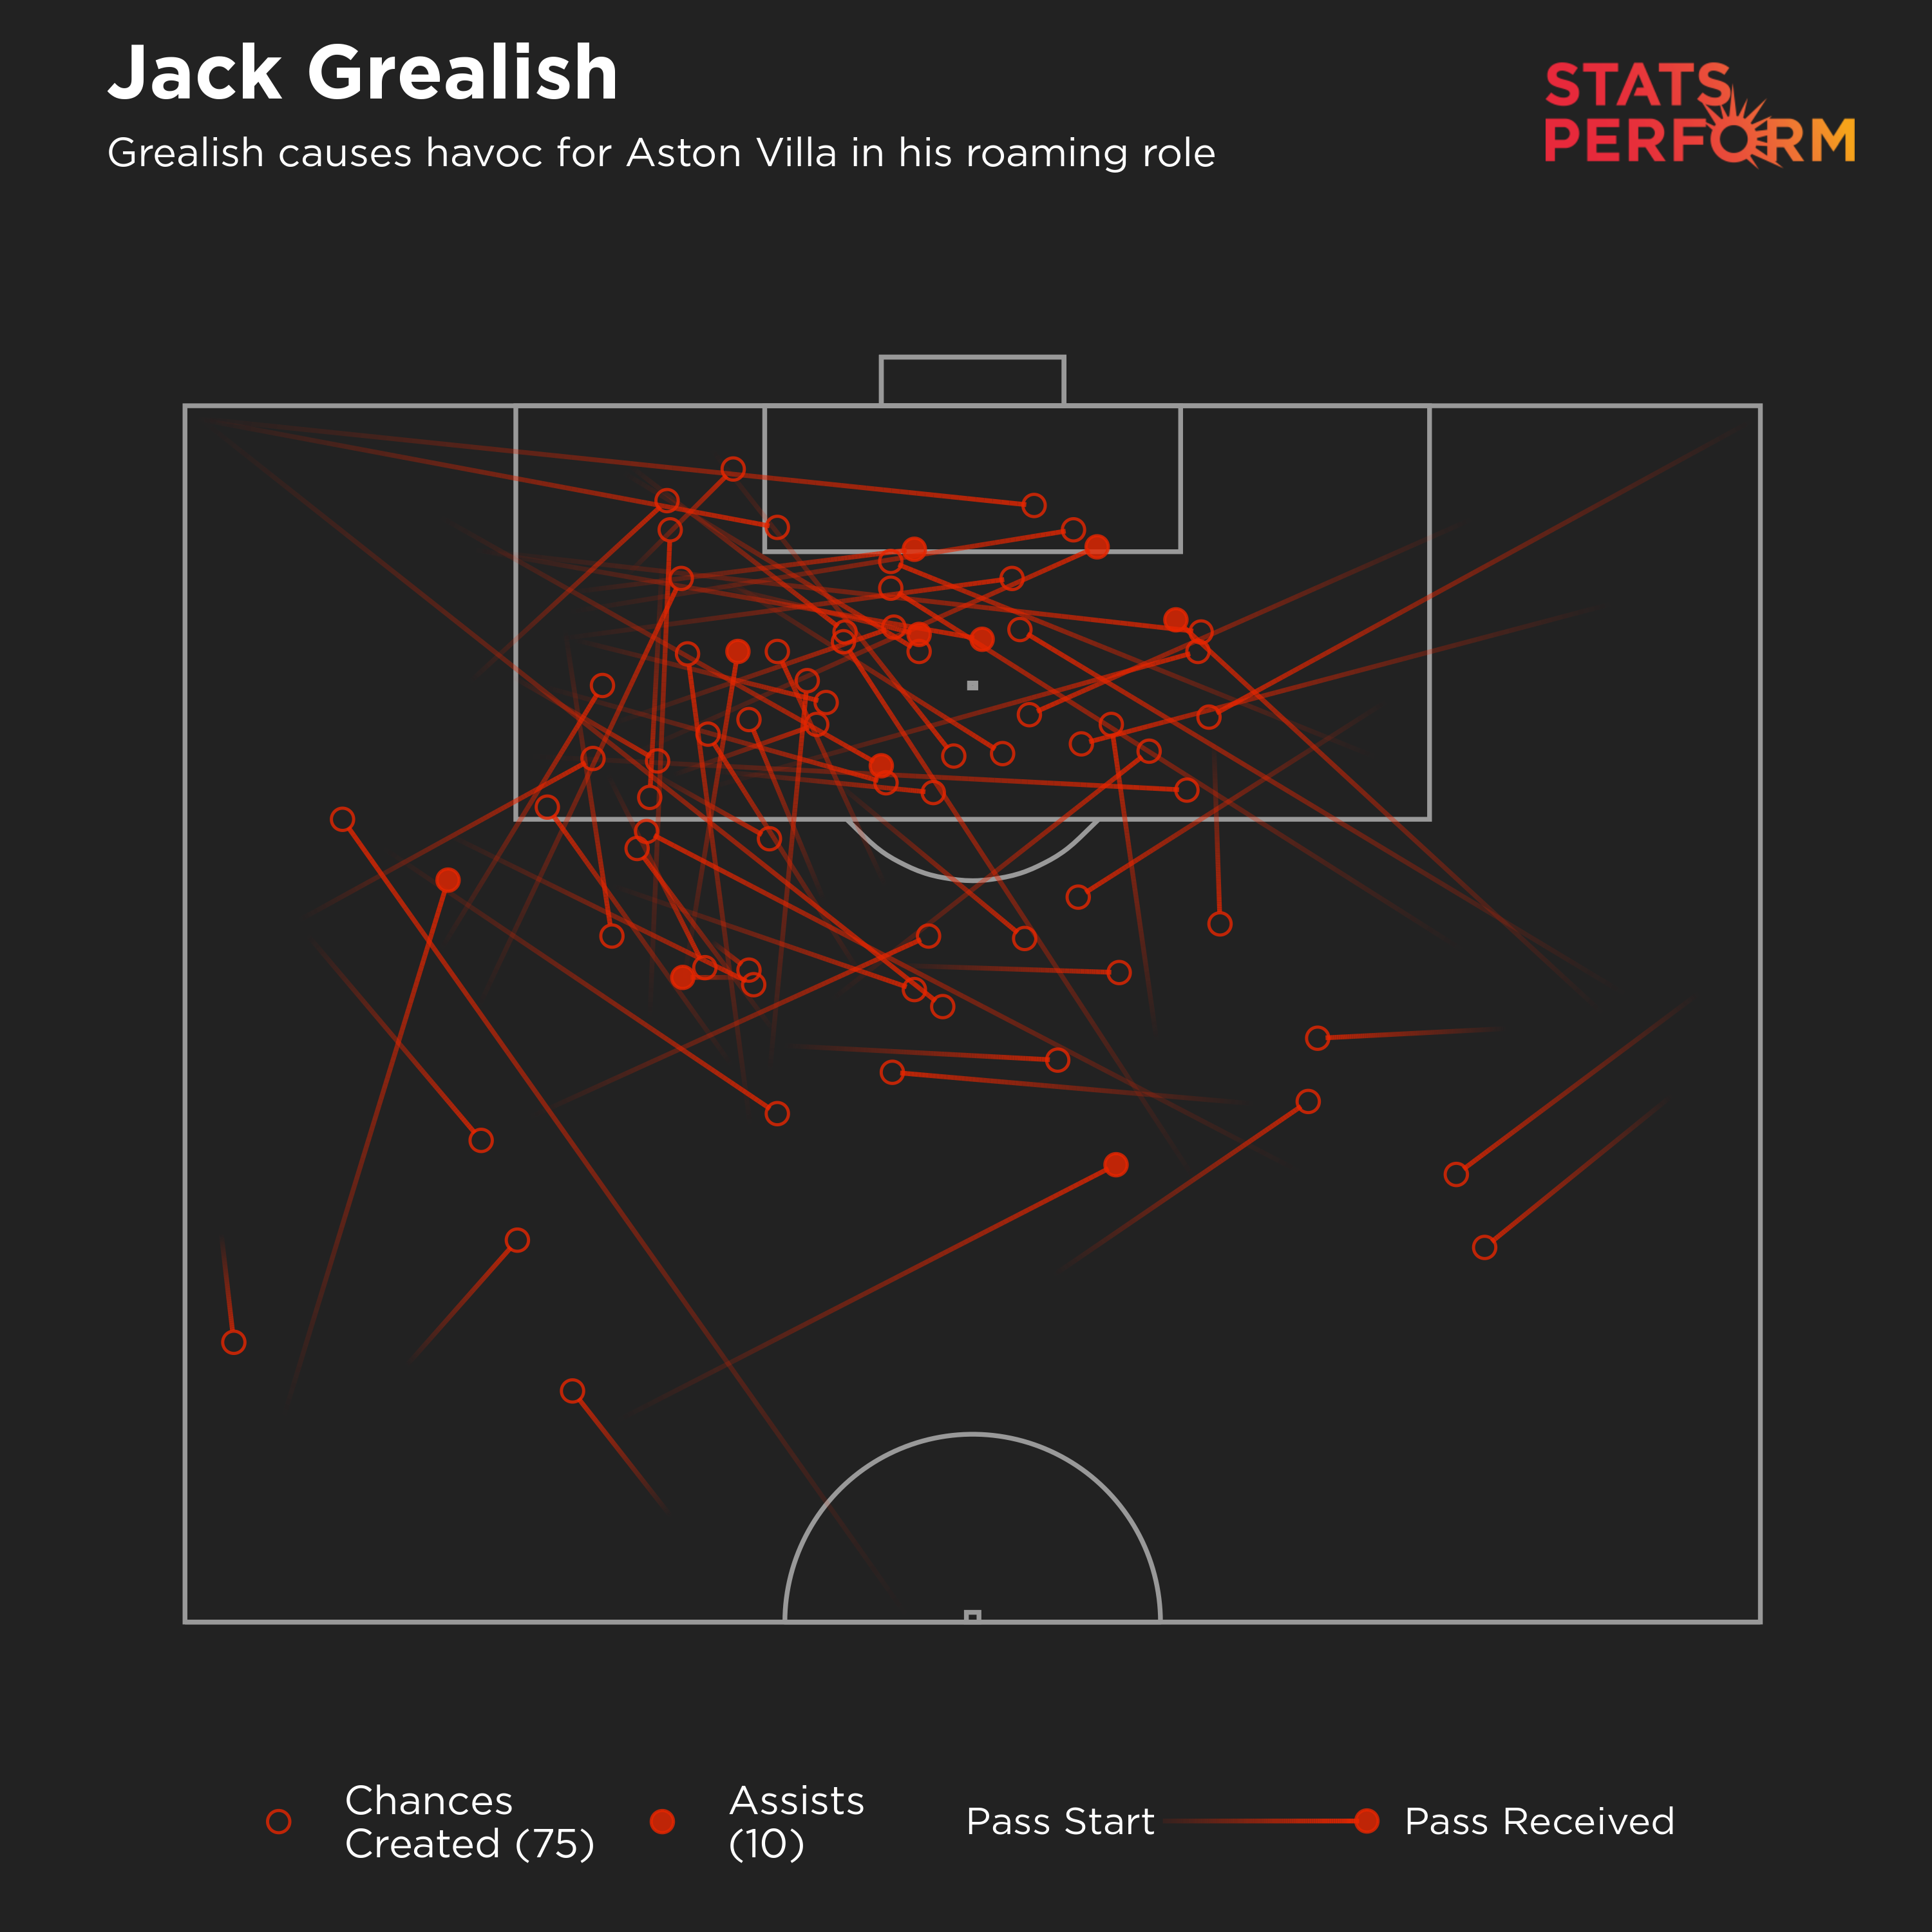 Jack Grealish causes havoc for Aston Villa in his roaming role